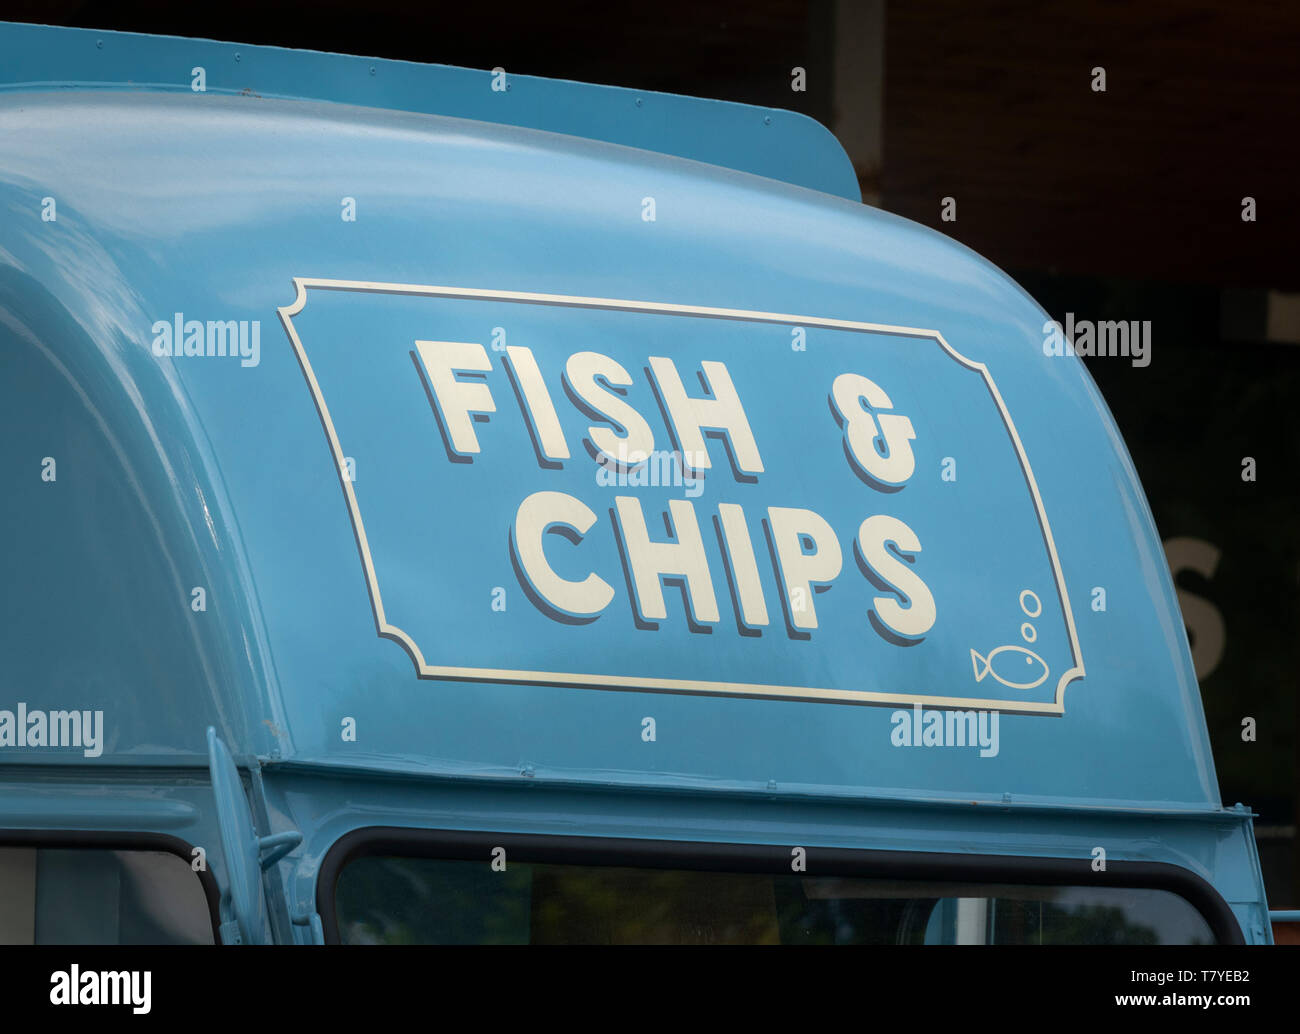 Fish and Chips sign on mobile street food van - Stock Image